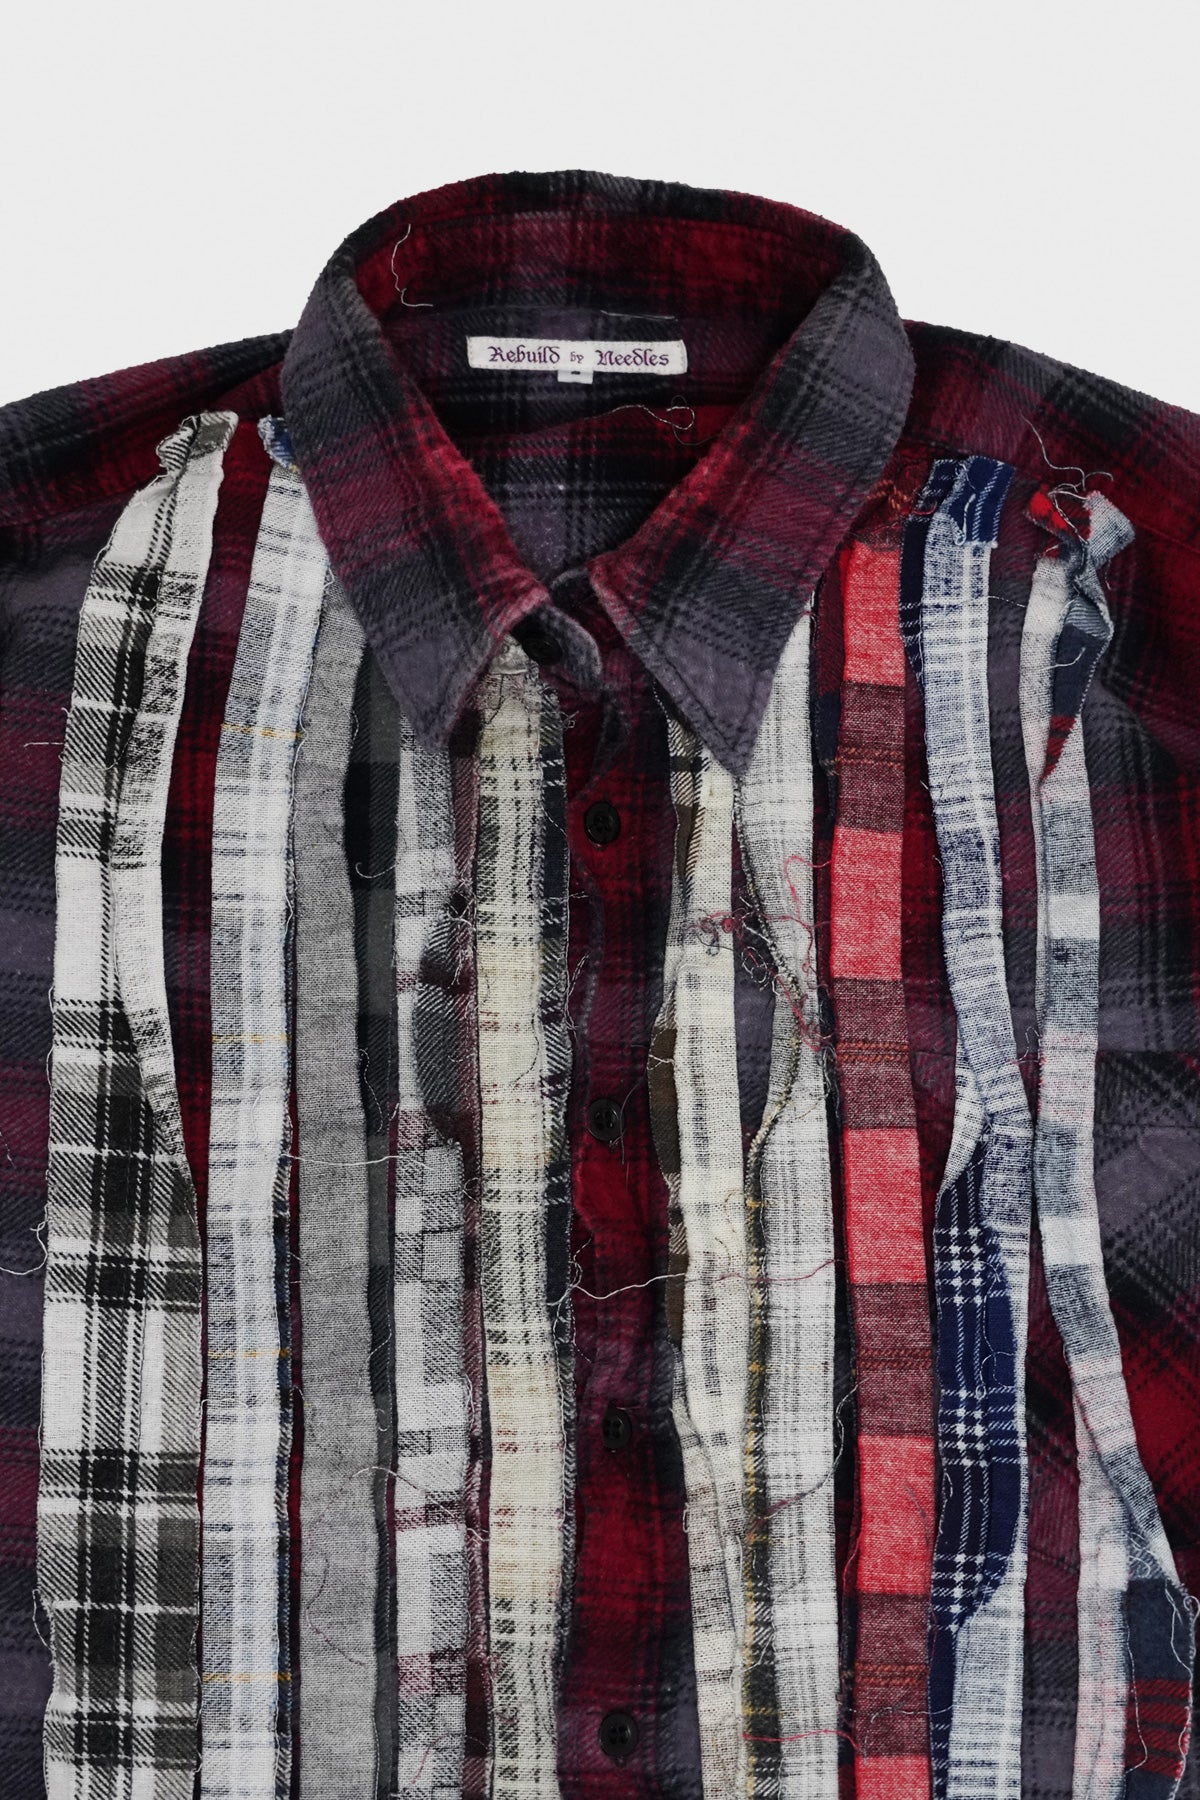 Needles - Ribbon Flannel Shirt - Assorted #4 - Small - Canoe Club